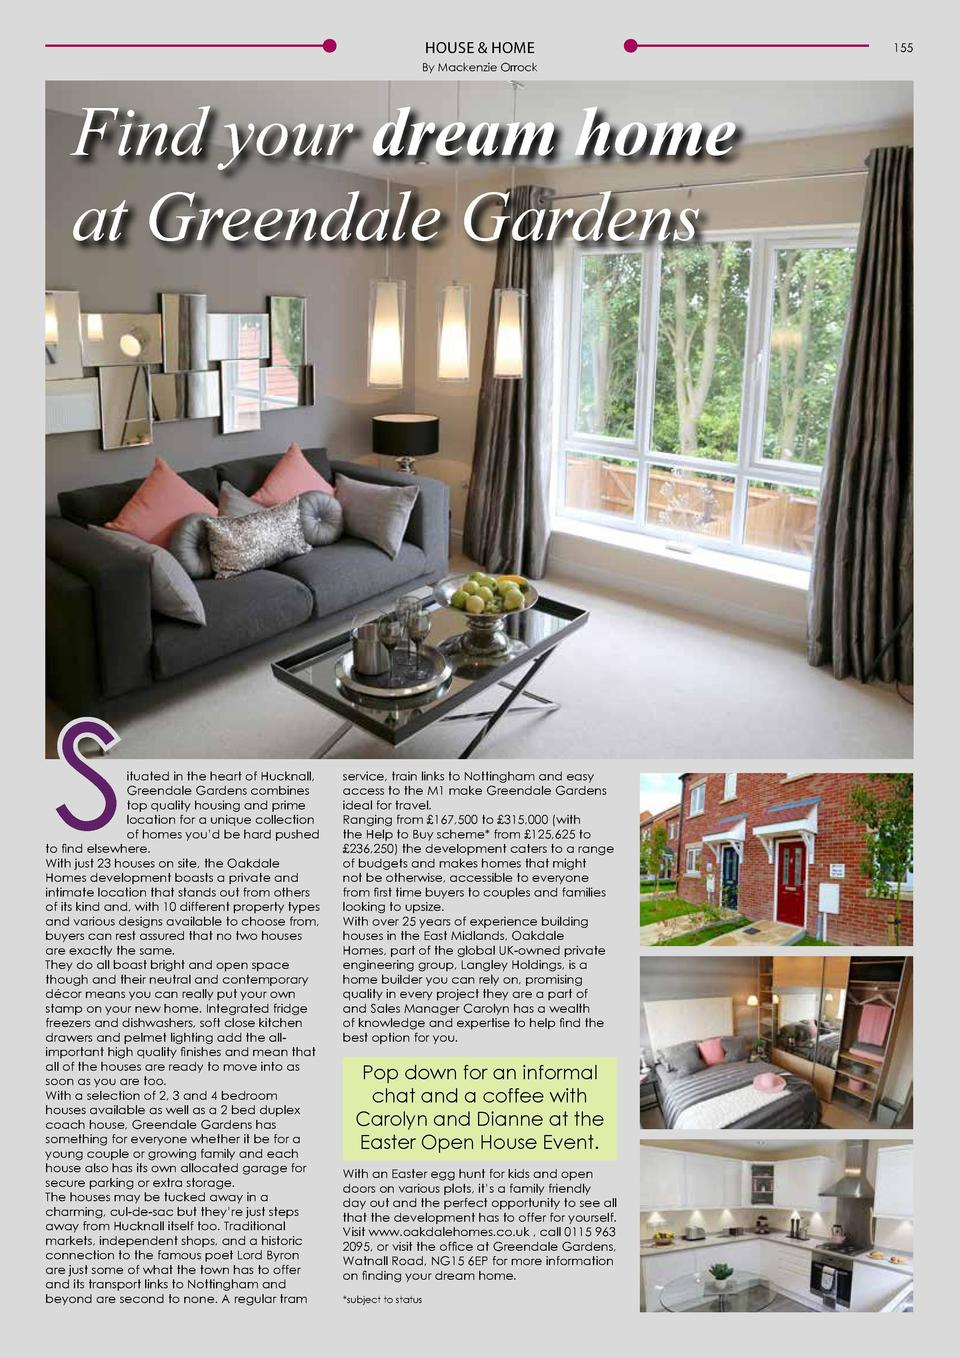 HOUSE   HOME By Mackenzie Orrock  Find your dream home at Greendale Gardens  S  ituated in the heart of Hucknall, Greendal...